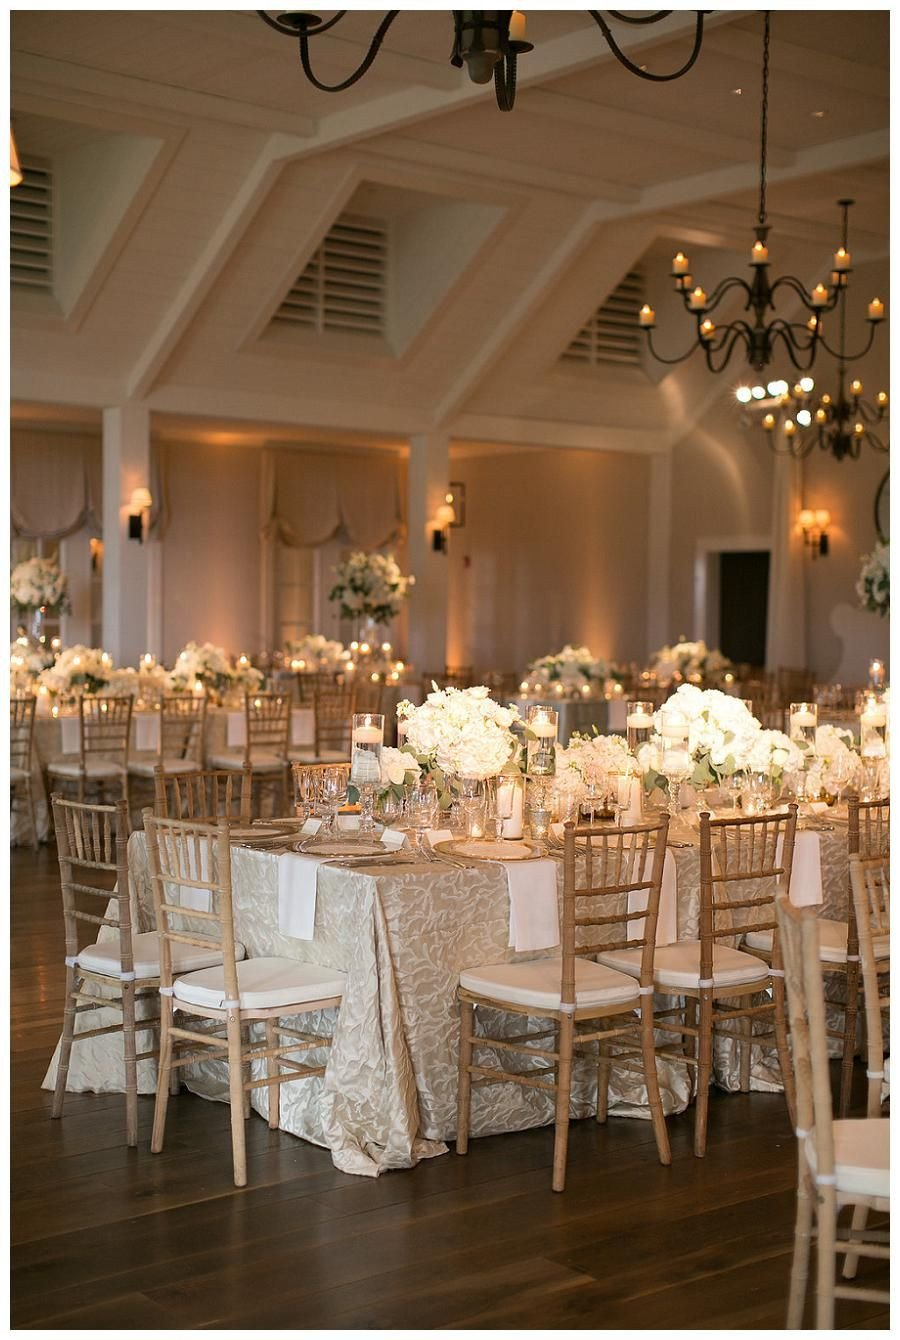 White and Gold Wedding Decor Inspirational Gold Ivory and White Wedding Reception Decor with White Florals In Glass Vessels Place